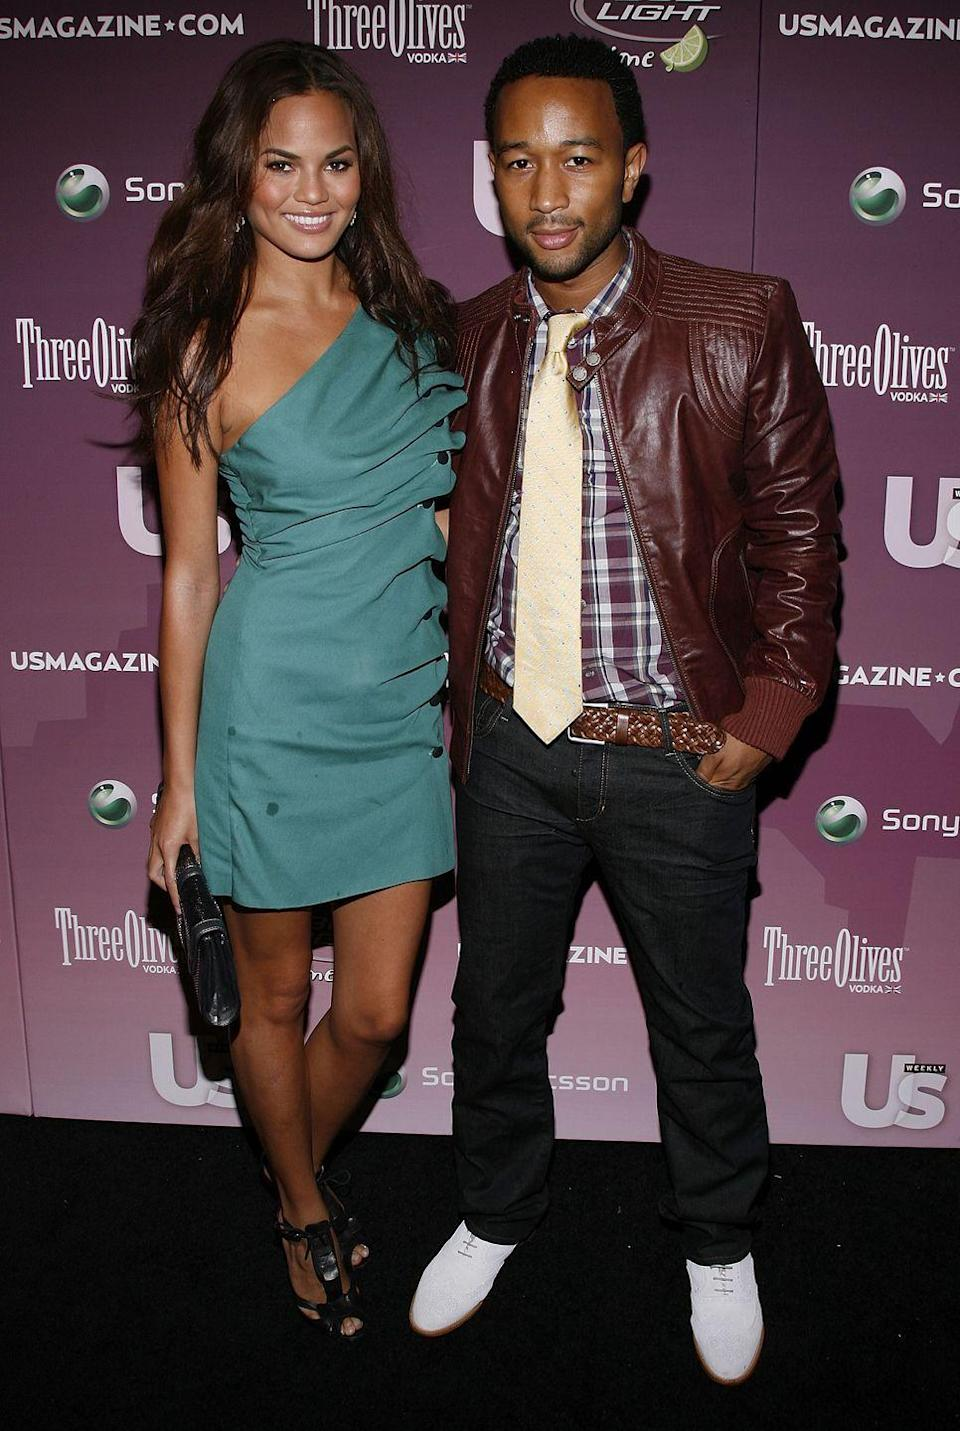 <p>At US Weekly's '25 Most Stylish New Yorkers' event, looking pretty stylish themselves.</p>